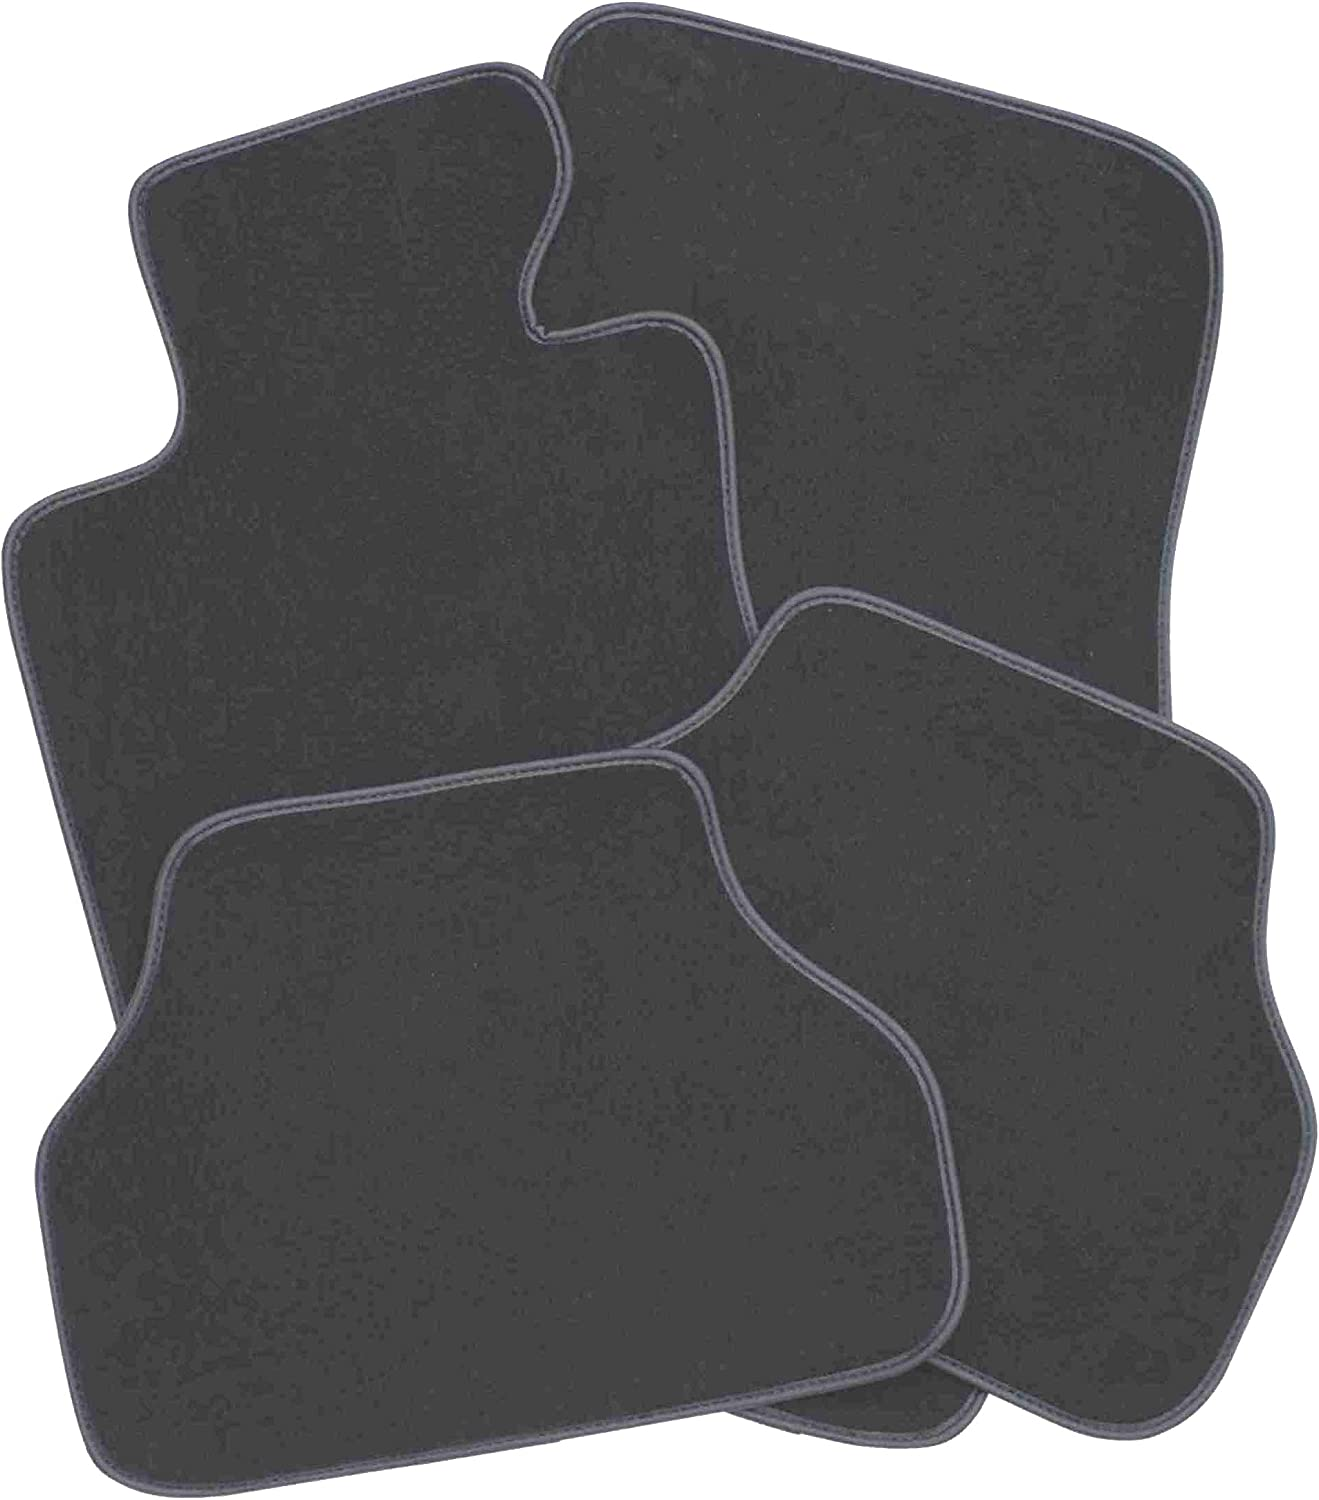 RAU Fitted Japan's largest assortment Cheap mail order sales Car Mats Pastel Graphite 2013with 45TÜRI03 RAV Mat